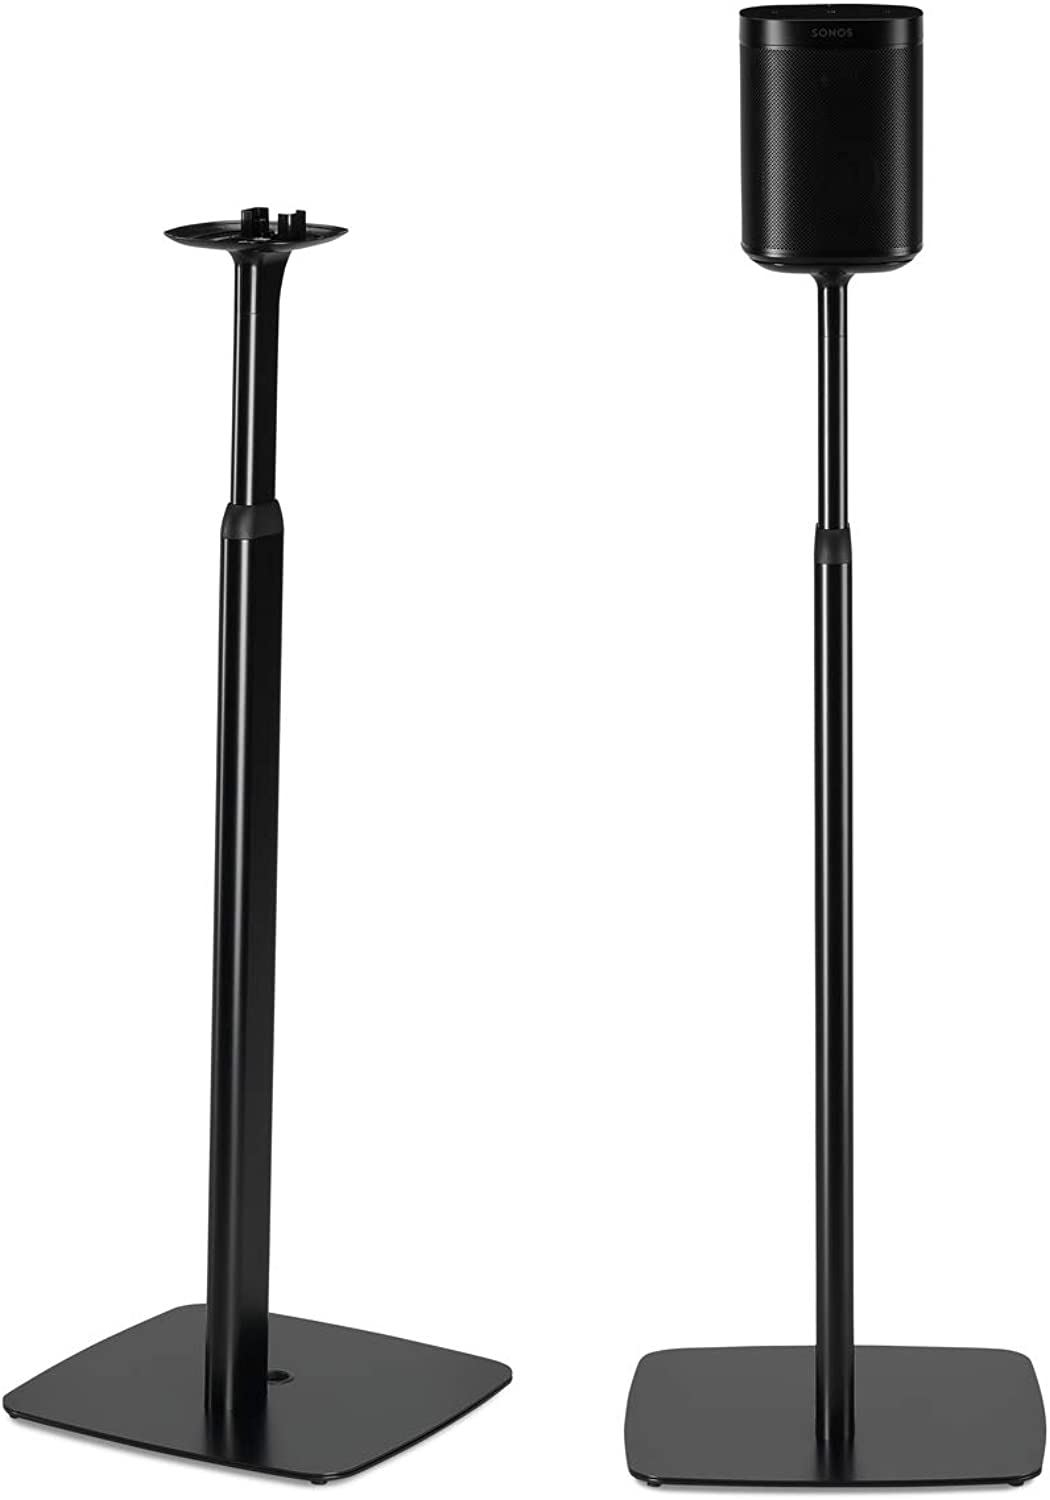 Flexson Adjustable Floor Stands for Sonos One and Sonos Play  1 (Pair, Black)